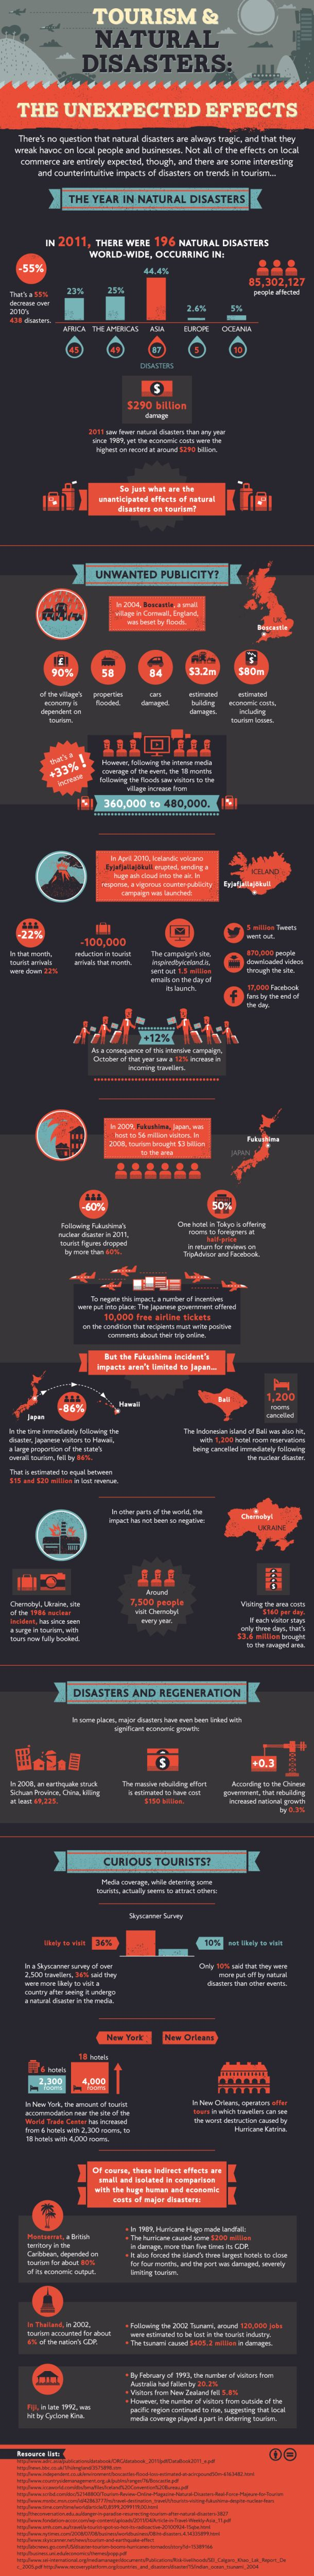 Tourism & Natural Disasters[INFOGRAPHIC]